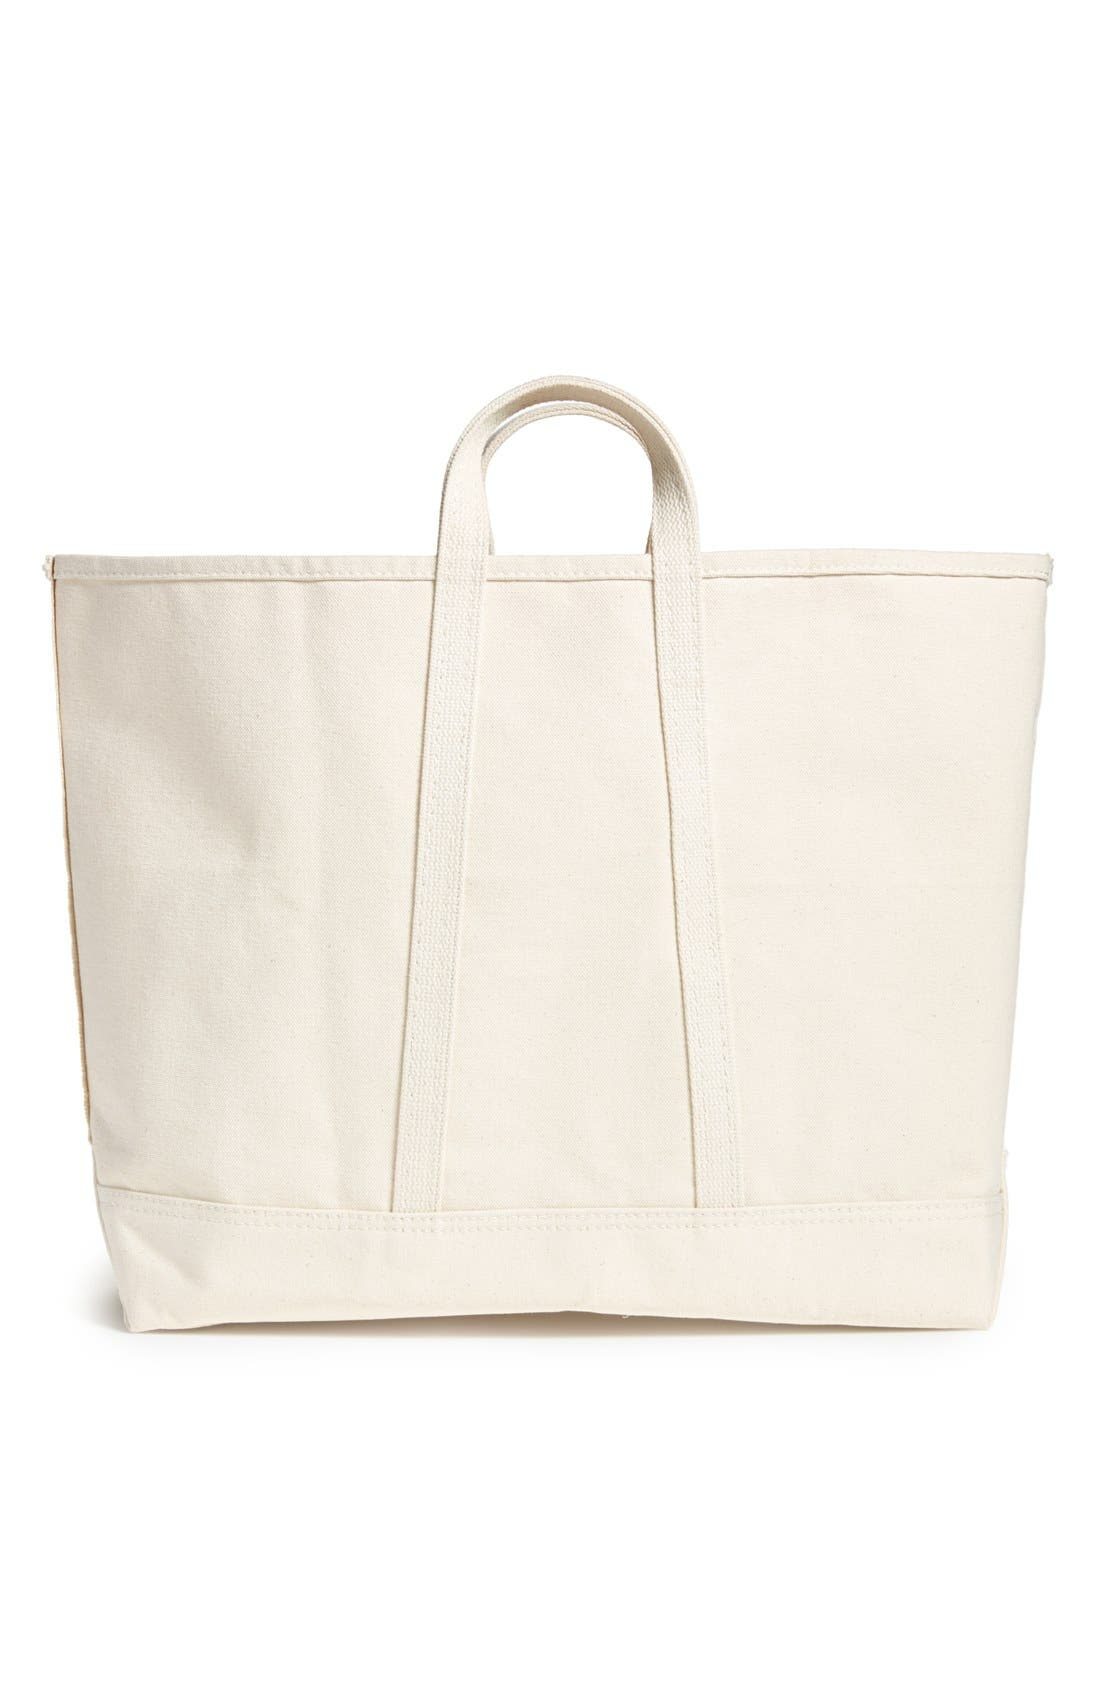 Alternate Image 3  - Best Made Co '100lb Coal Bag' Canvas Tote